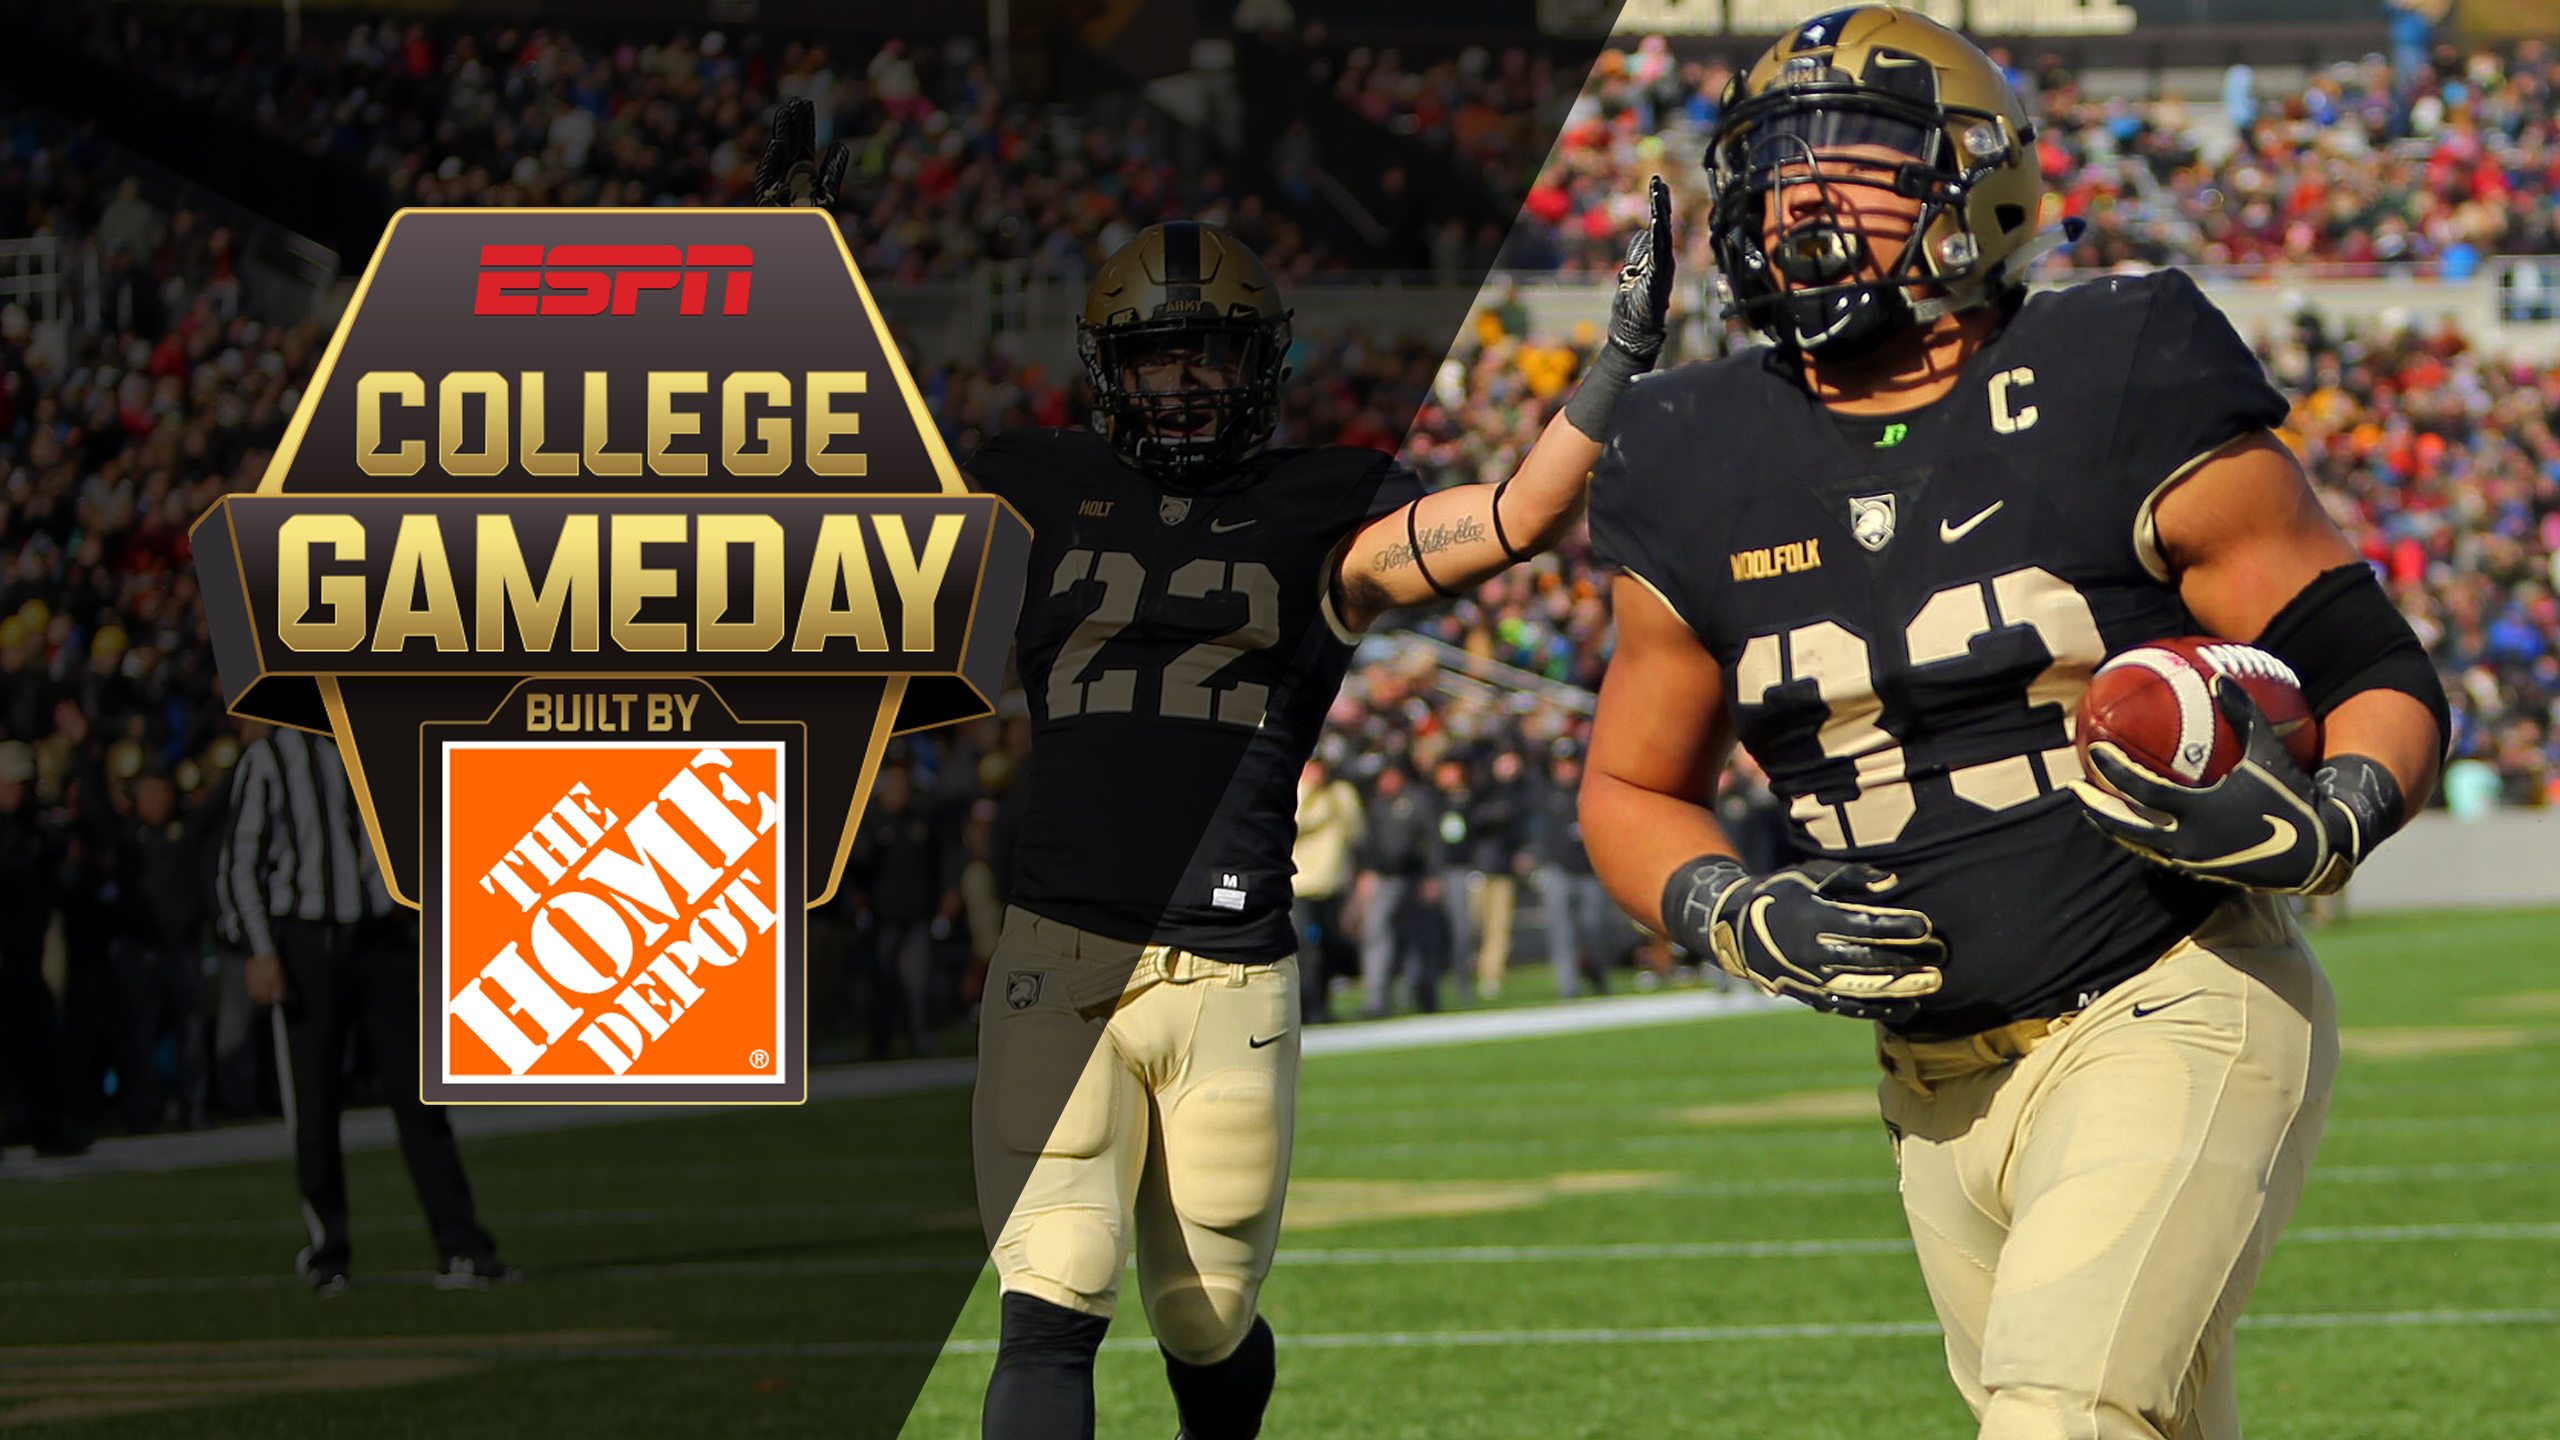 Sat, 12/8 - College GameDay Built by The Home Depot